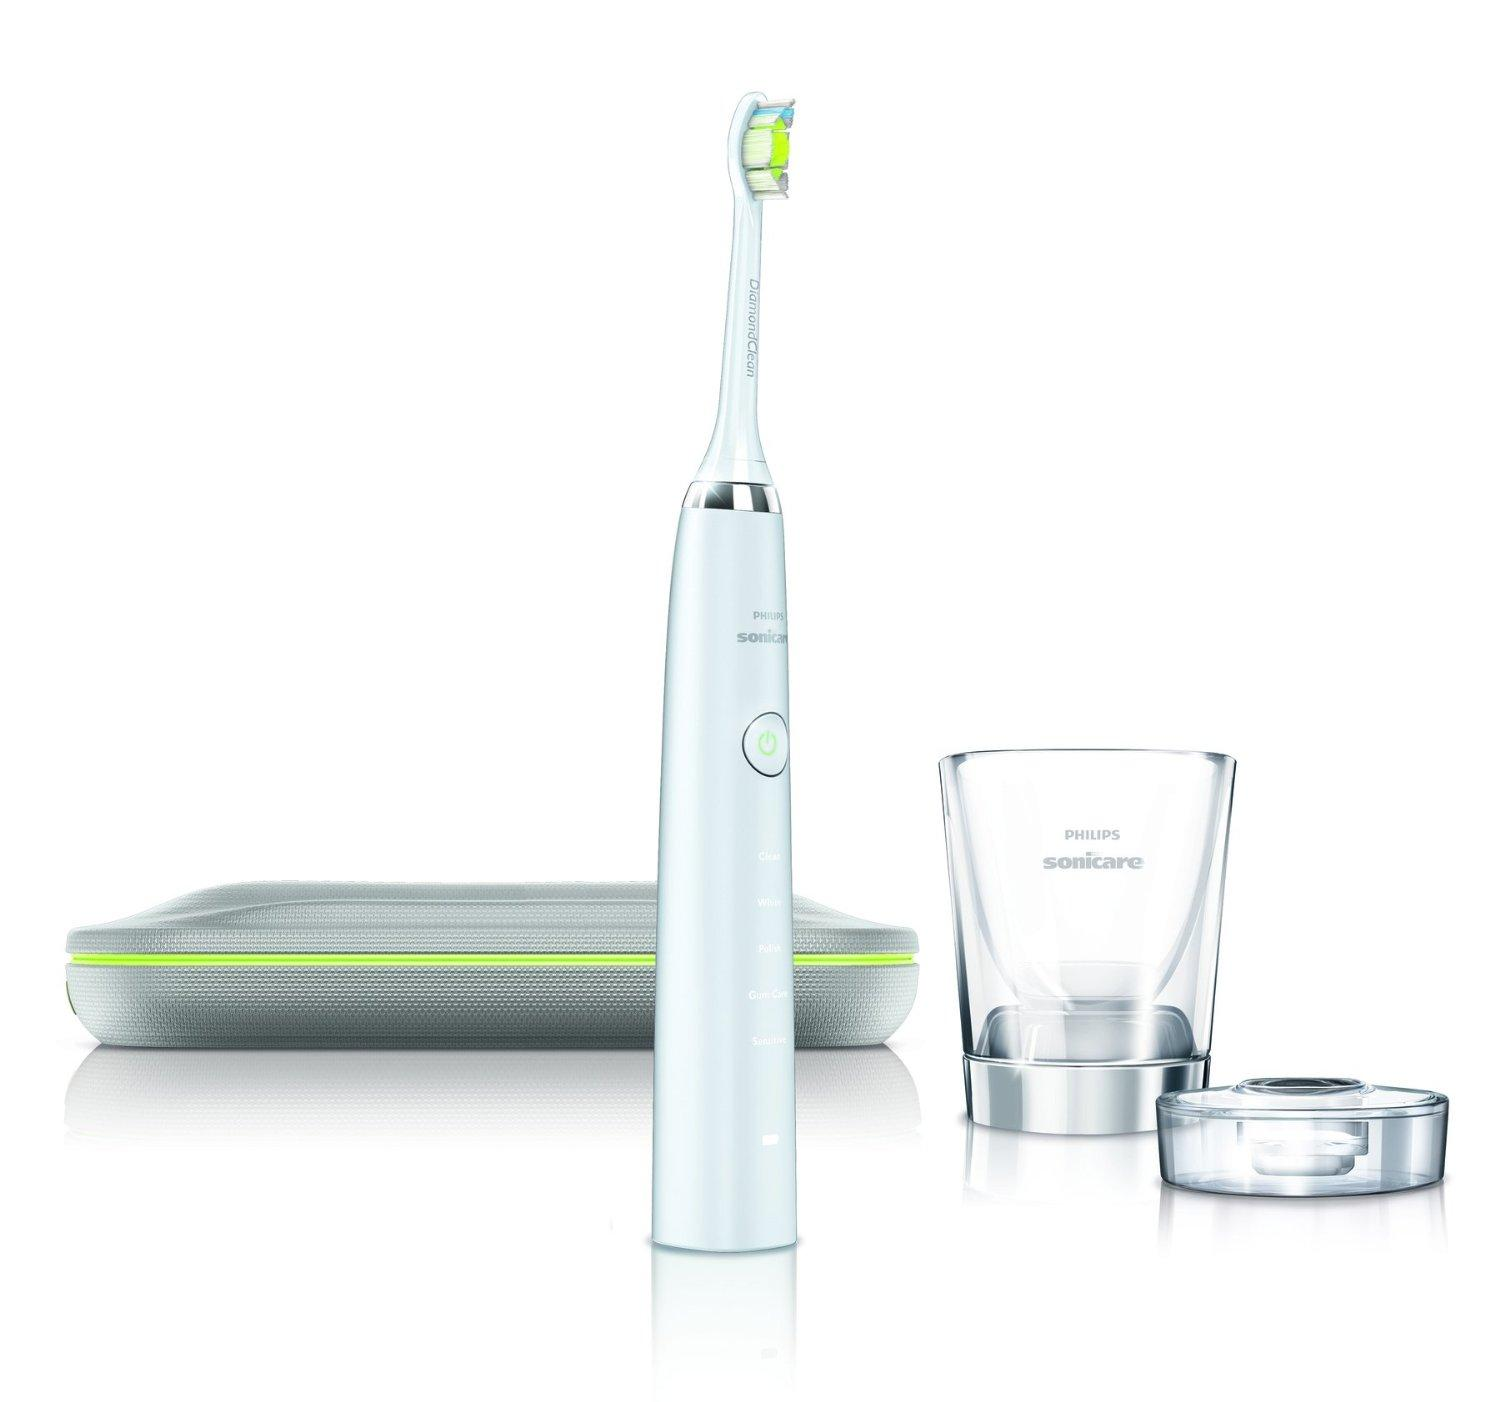 $127.81(reg. $219.99) Philips Sonicare DiamondClean Rechargeable Electric Toothbrush